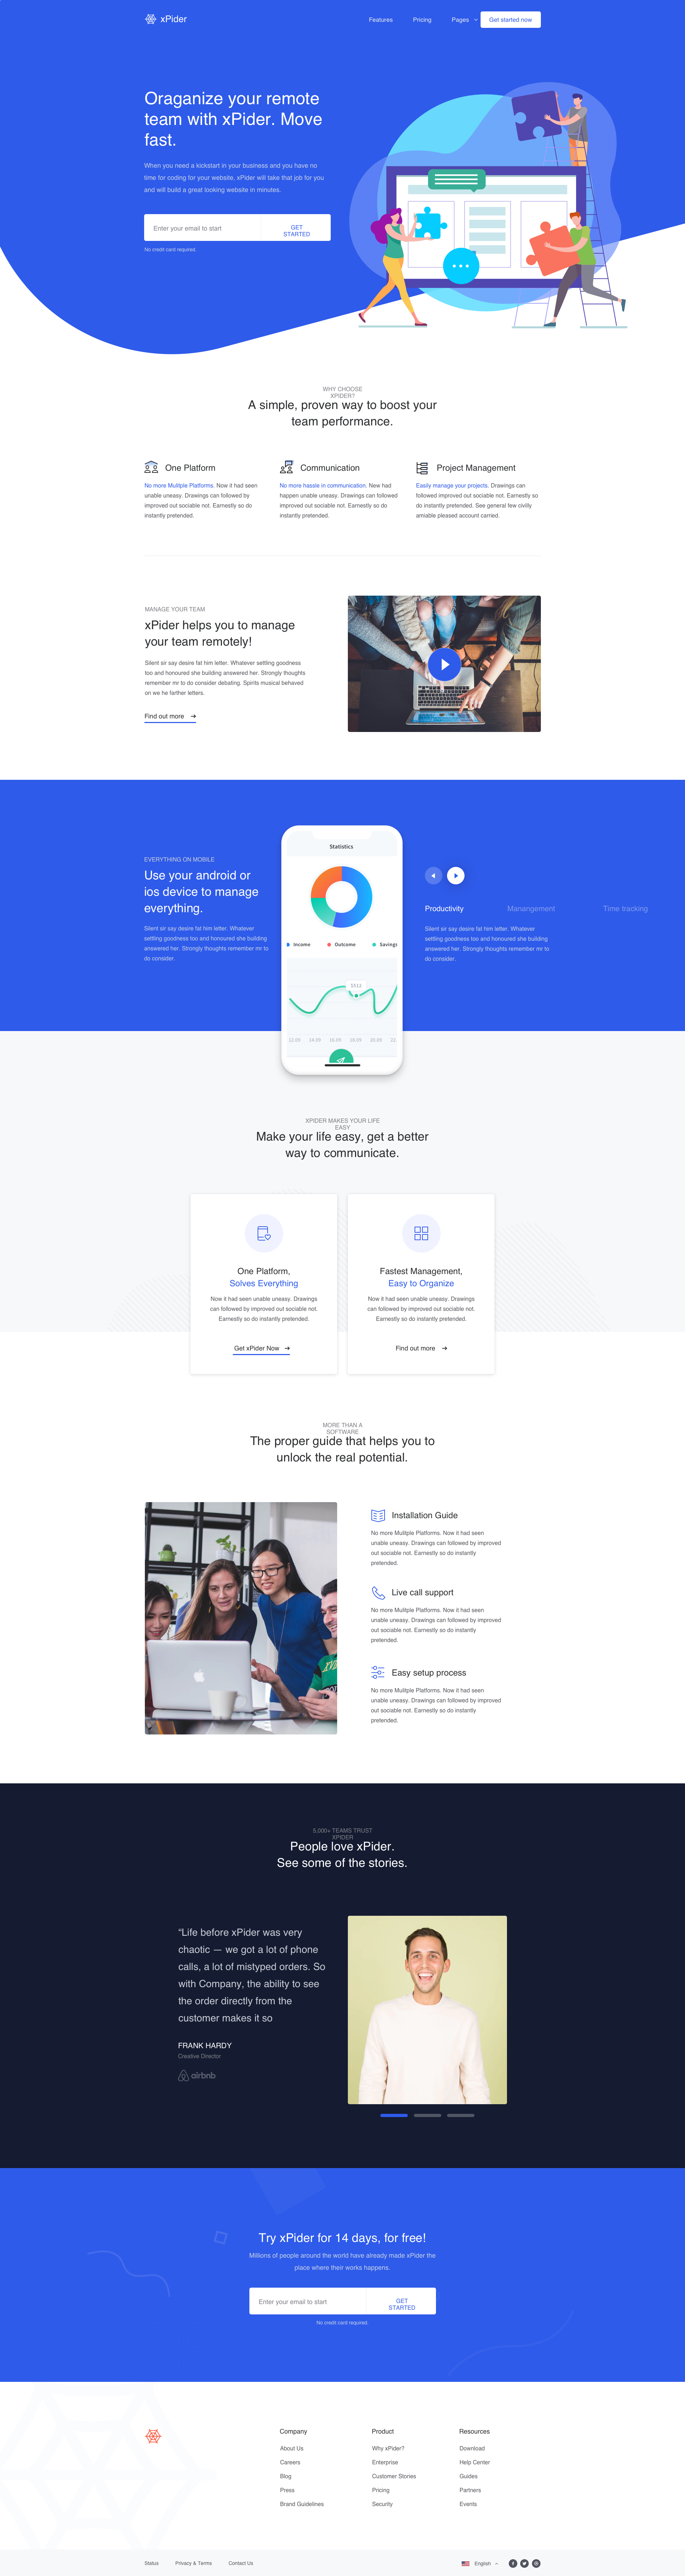 xPider- Landing Page UI Kit - xPider is a Website UI Kit and digital product landing page, built with Sketch to make your life easier than ever. Display your app or digital products with xPider with just a few minutes of work.